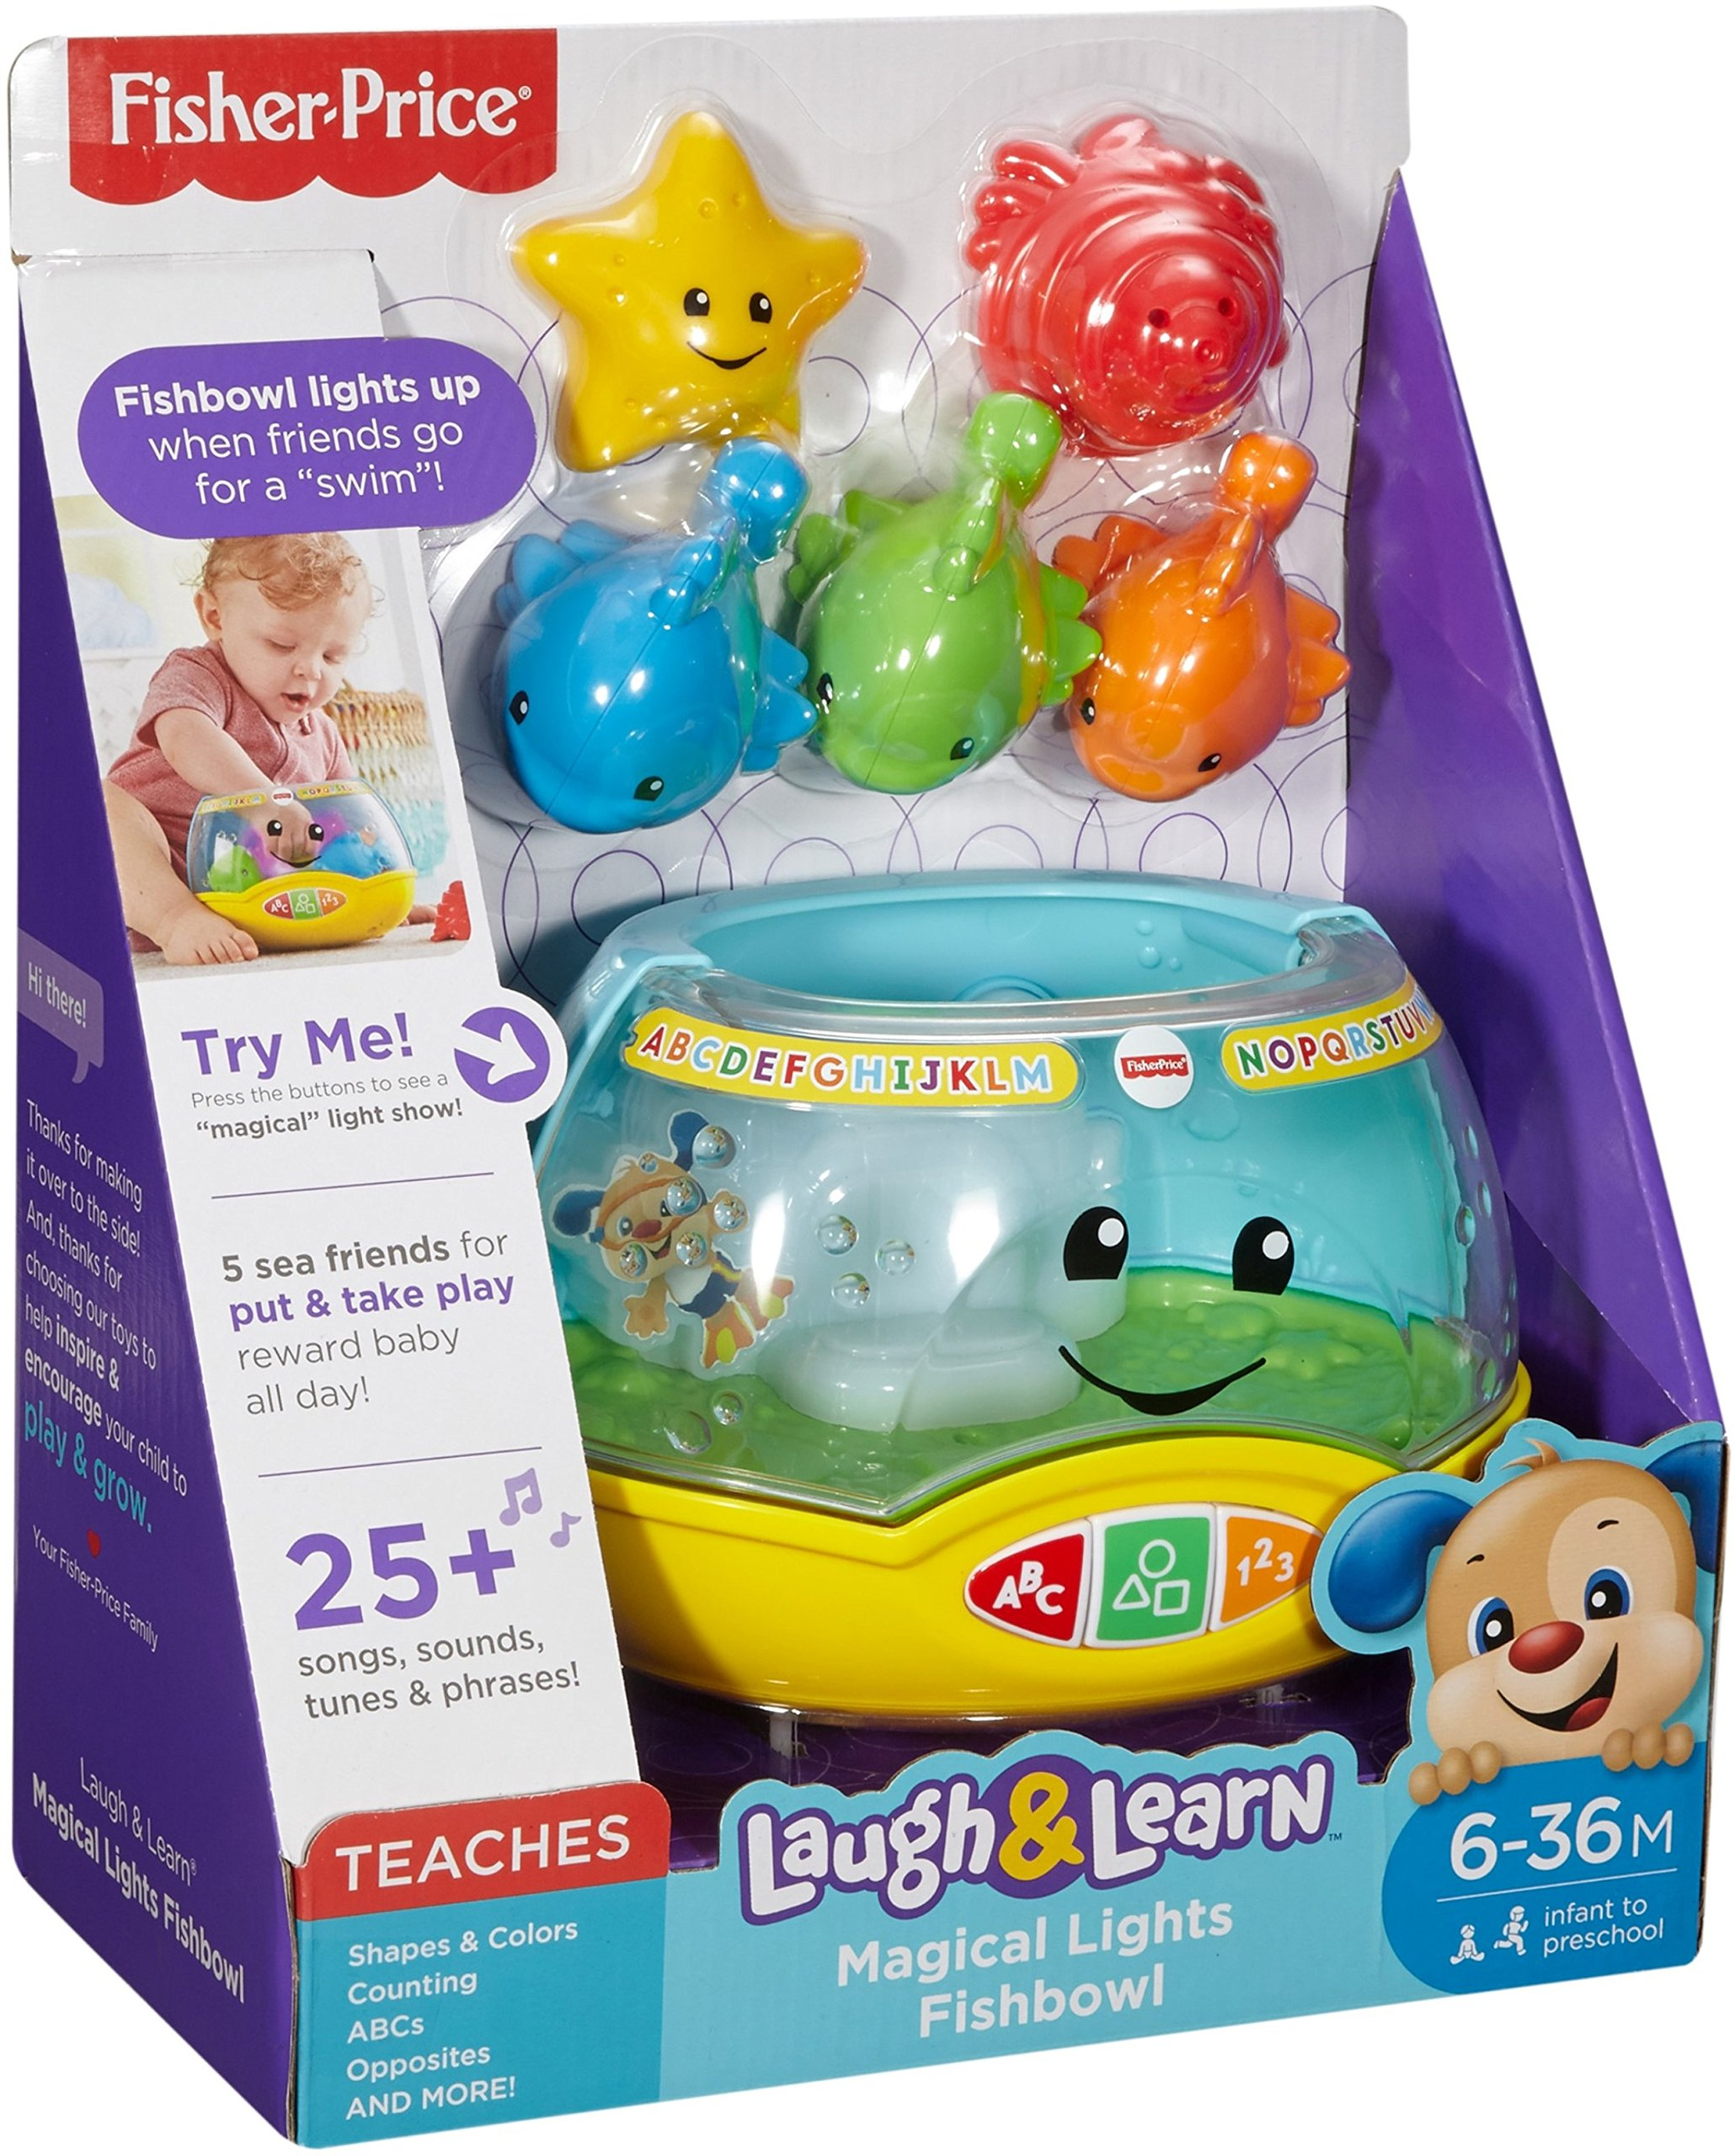 Fisher-Price Laugh & Learn Magical Lights Fishbowl by Fisher-Price (Image #15)